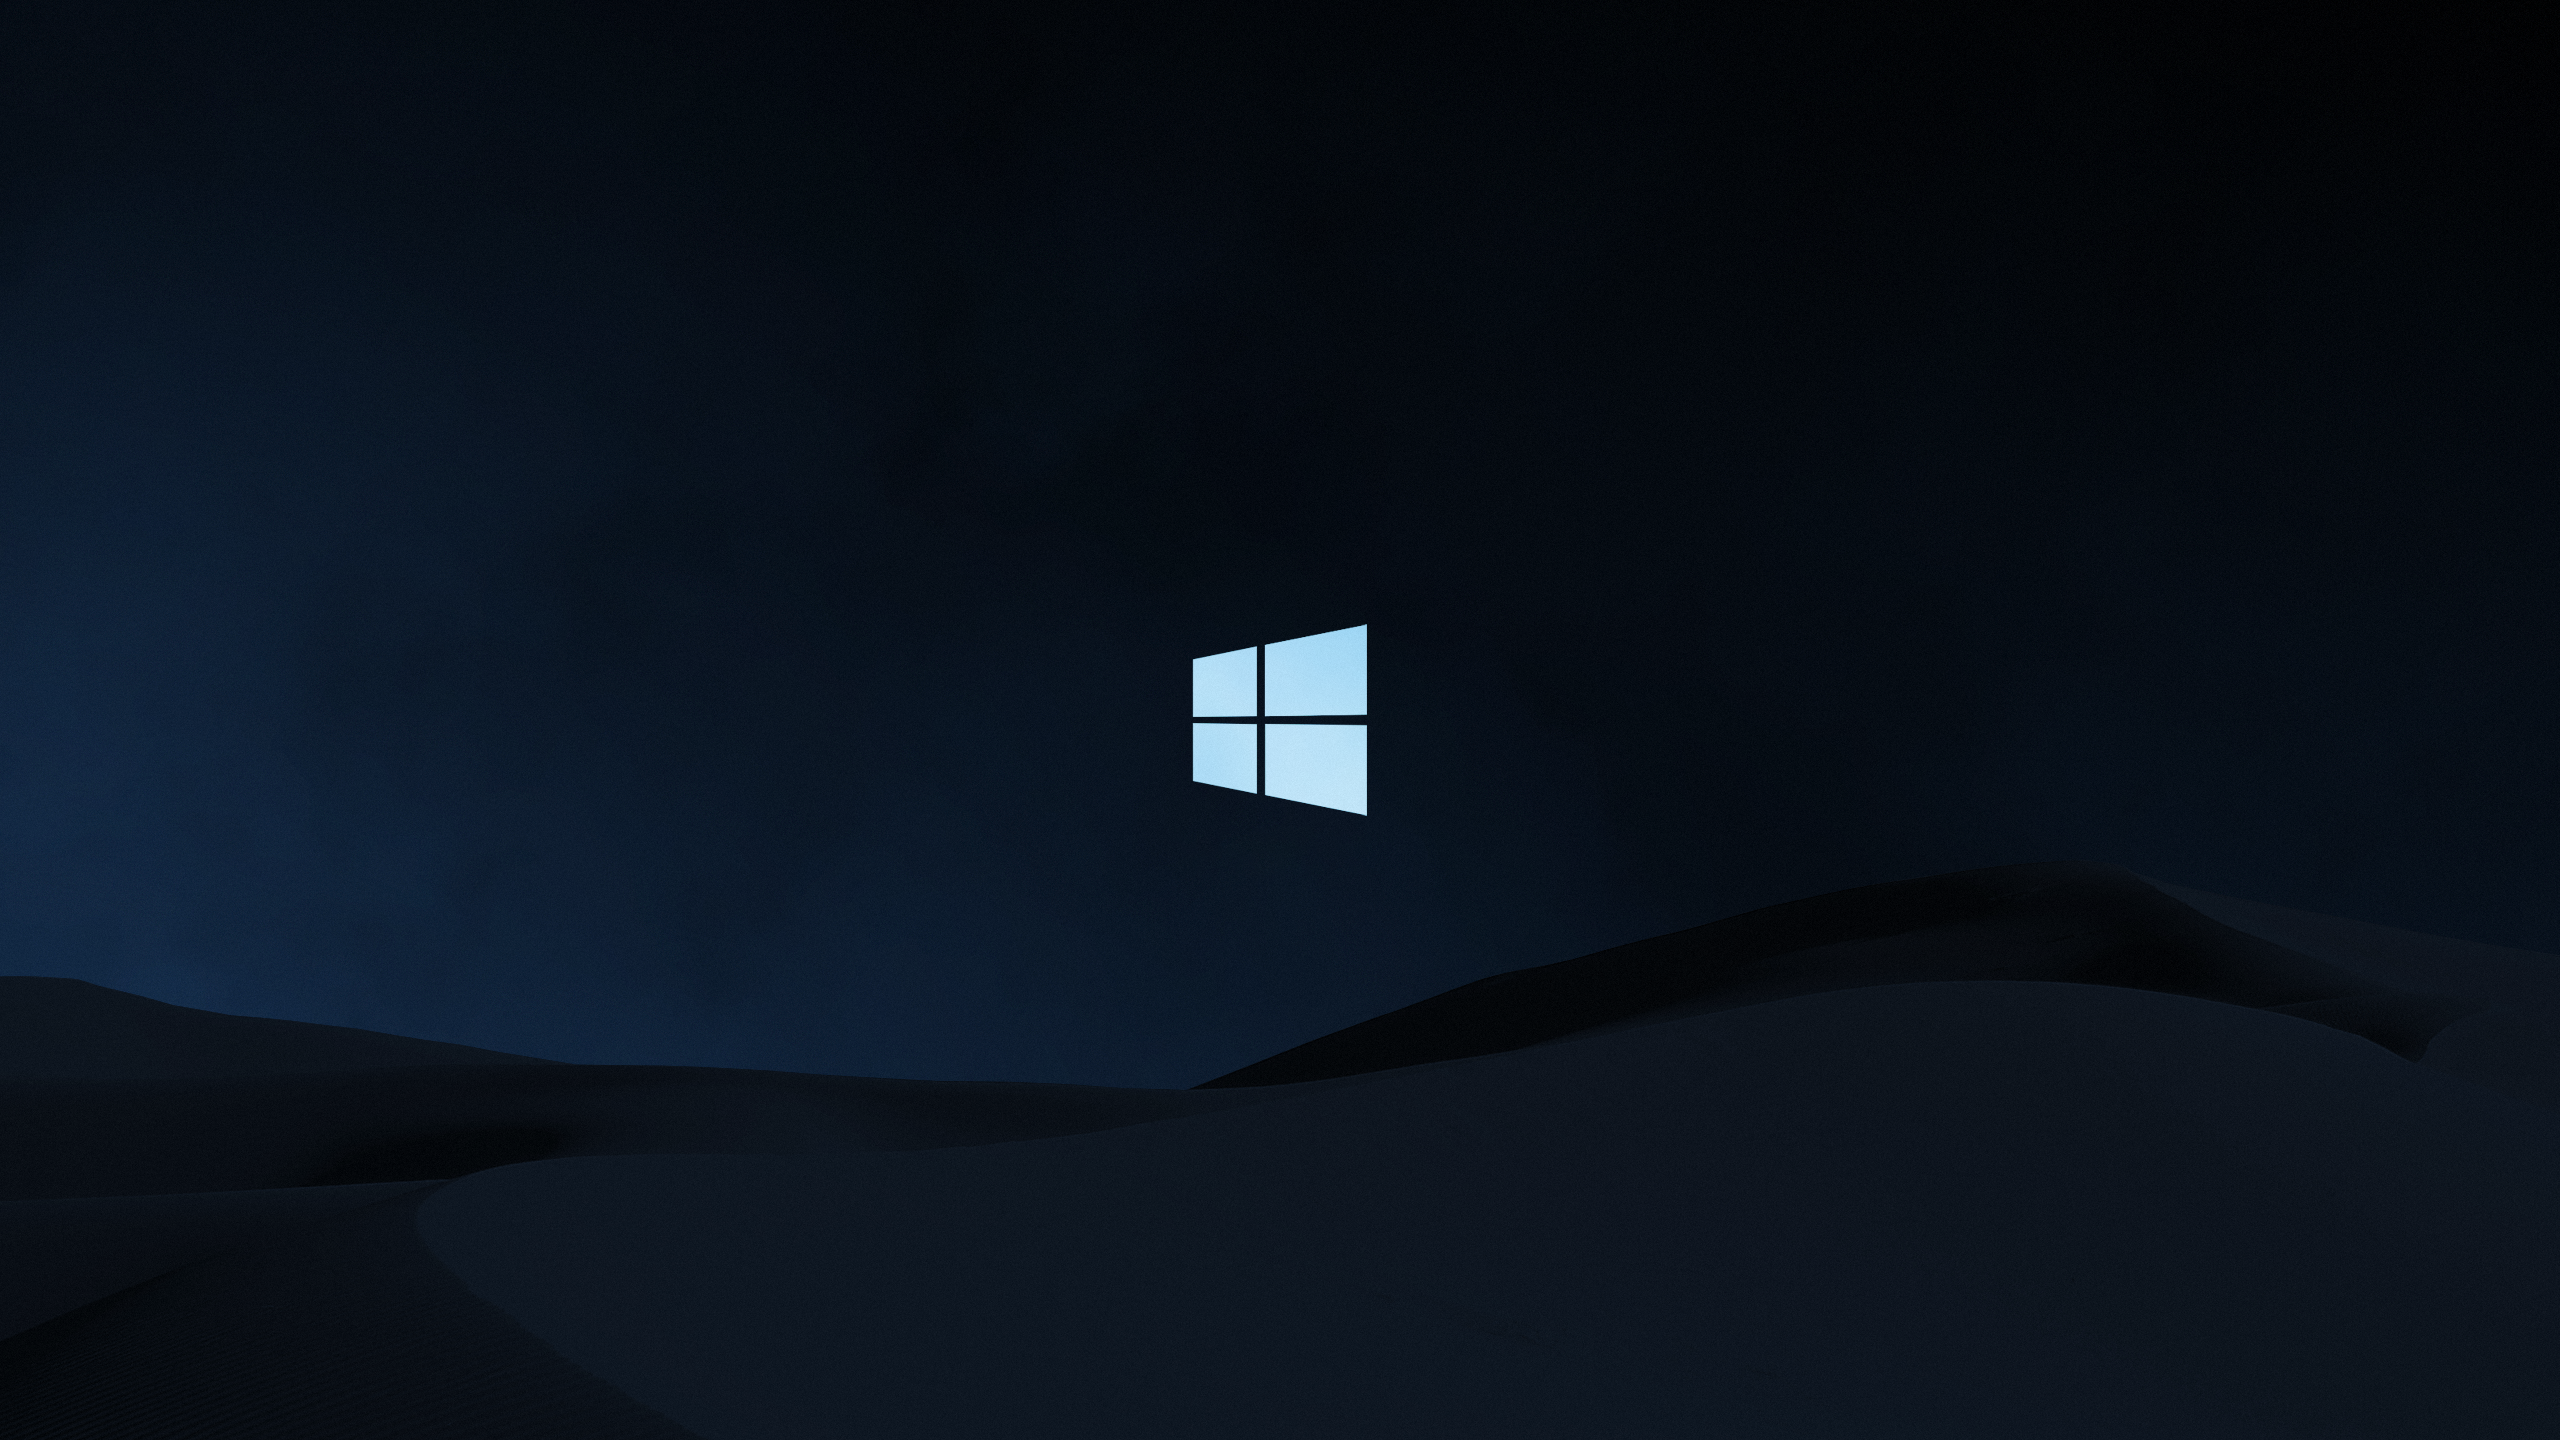 Clean Windows Background Windows Wallpaper Desktop Wallpaper Art Wallpaper Windows 10